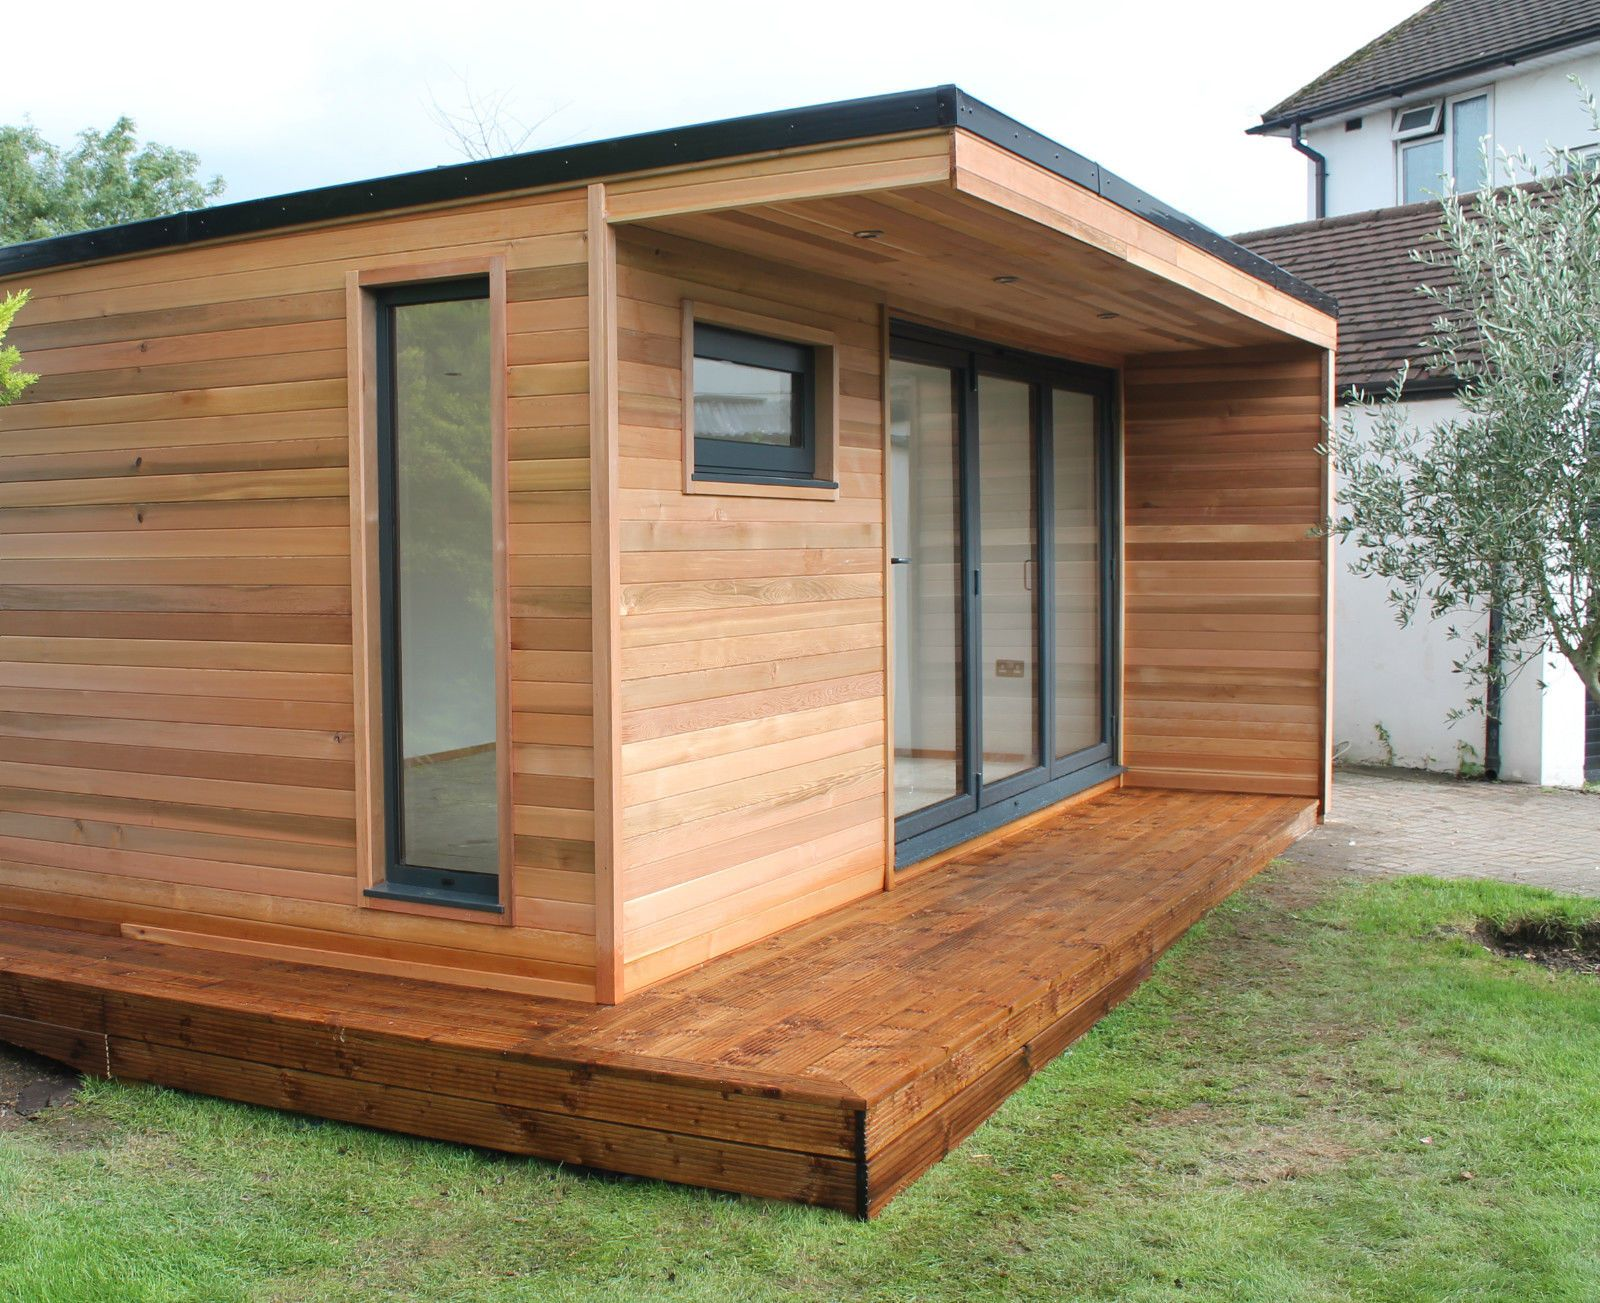 Garden Sheds 5m X 3m 5m x 3m garden room / home office / studio / summer house / log